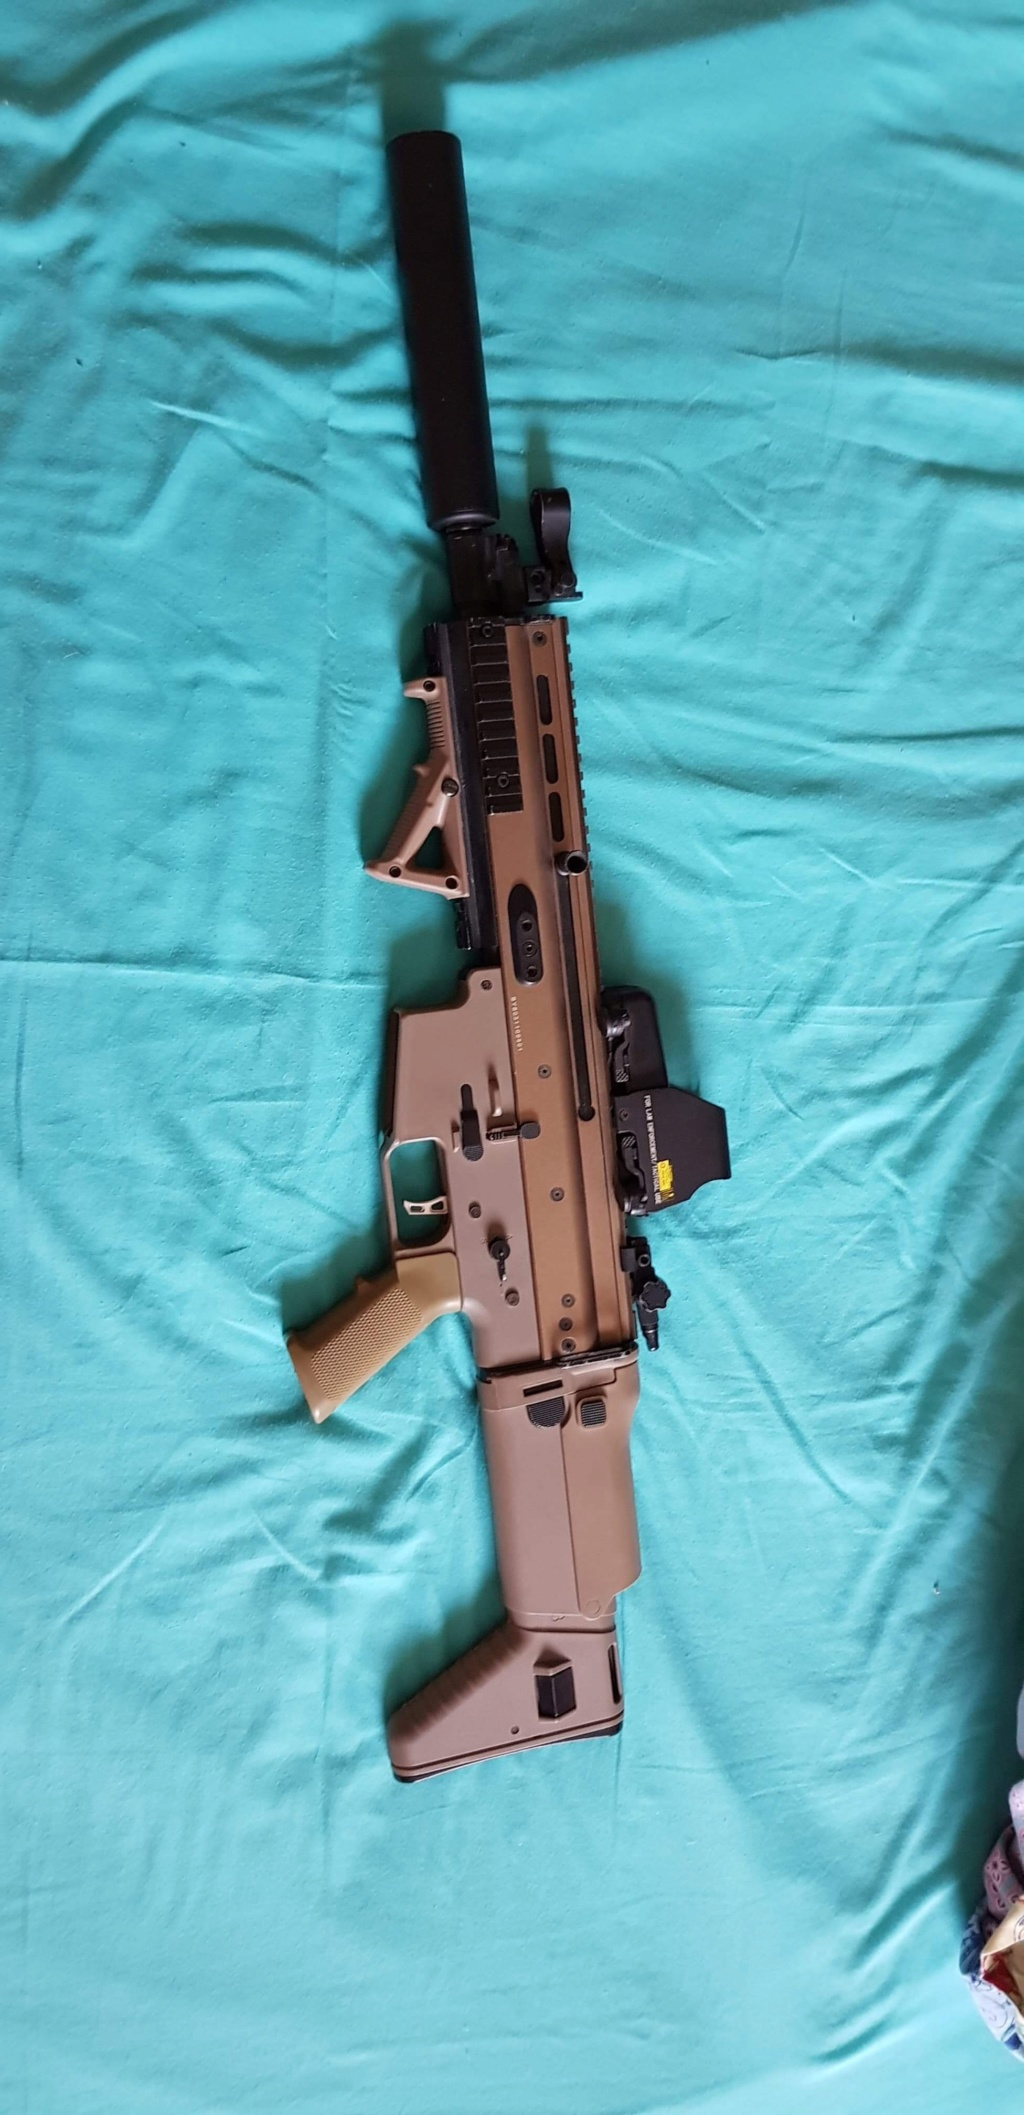 Scar l dboy full upgrader  61a2b210